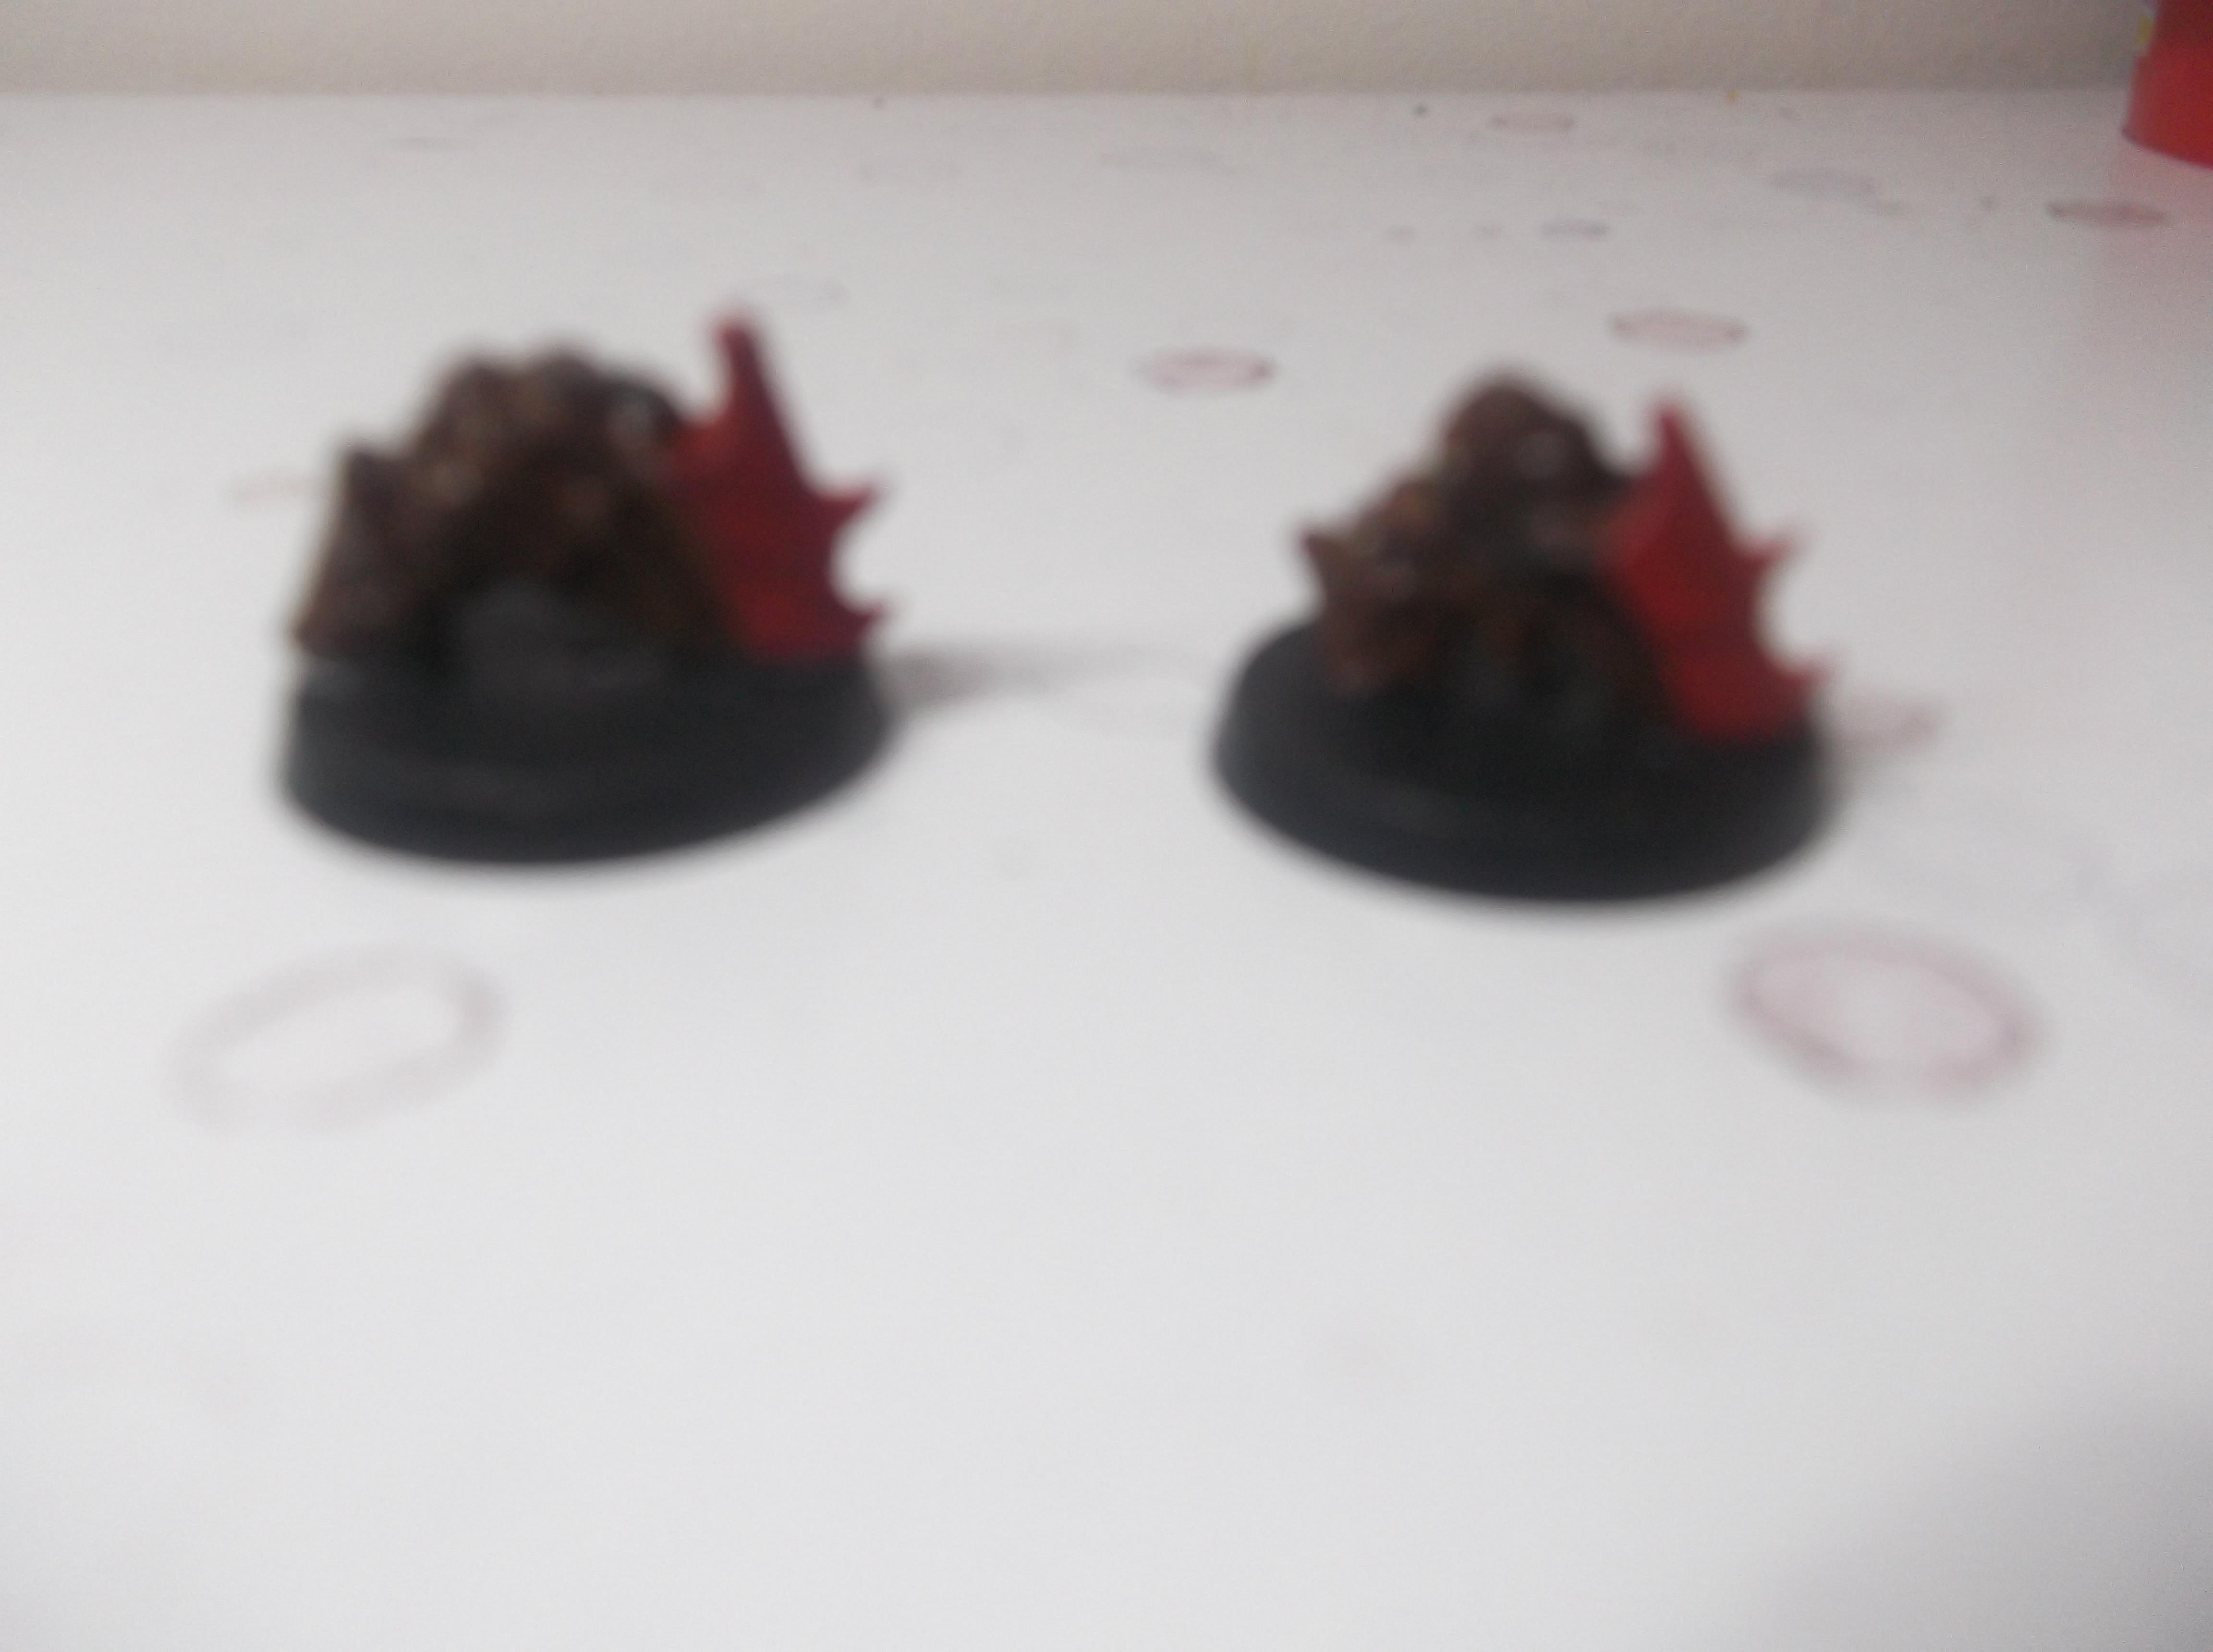 rndom markers/objectives